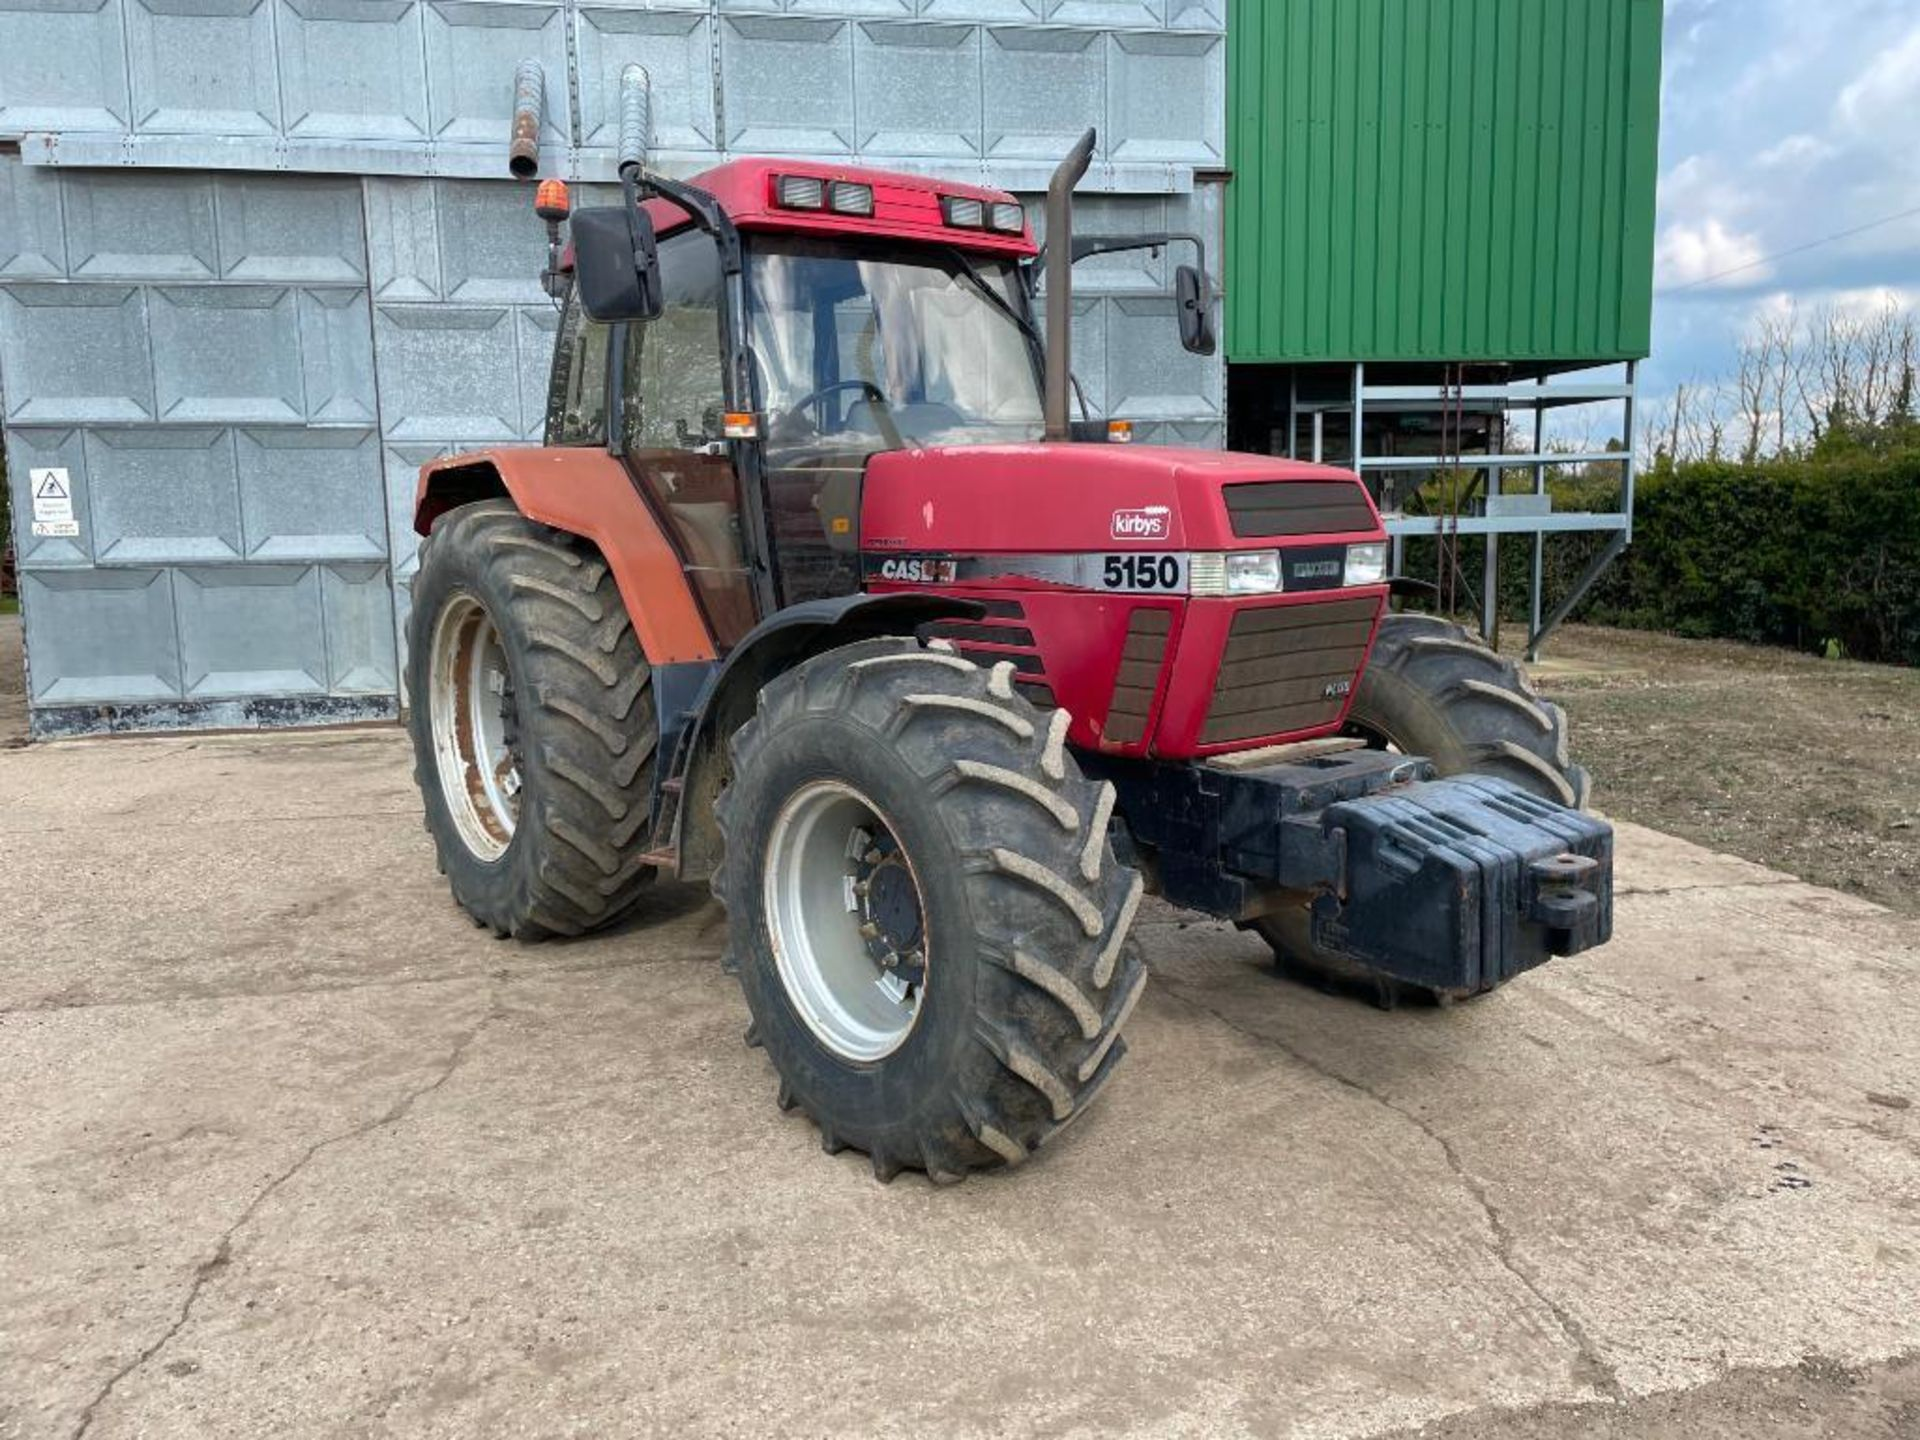 1997 Case IH 5150 Maxxum Plus Powershift 4wd tractor with 2 spools, PUH and front wafer weights on 1 - Image 2 of 13